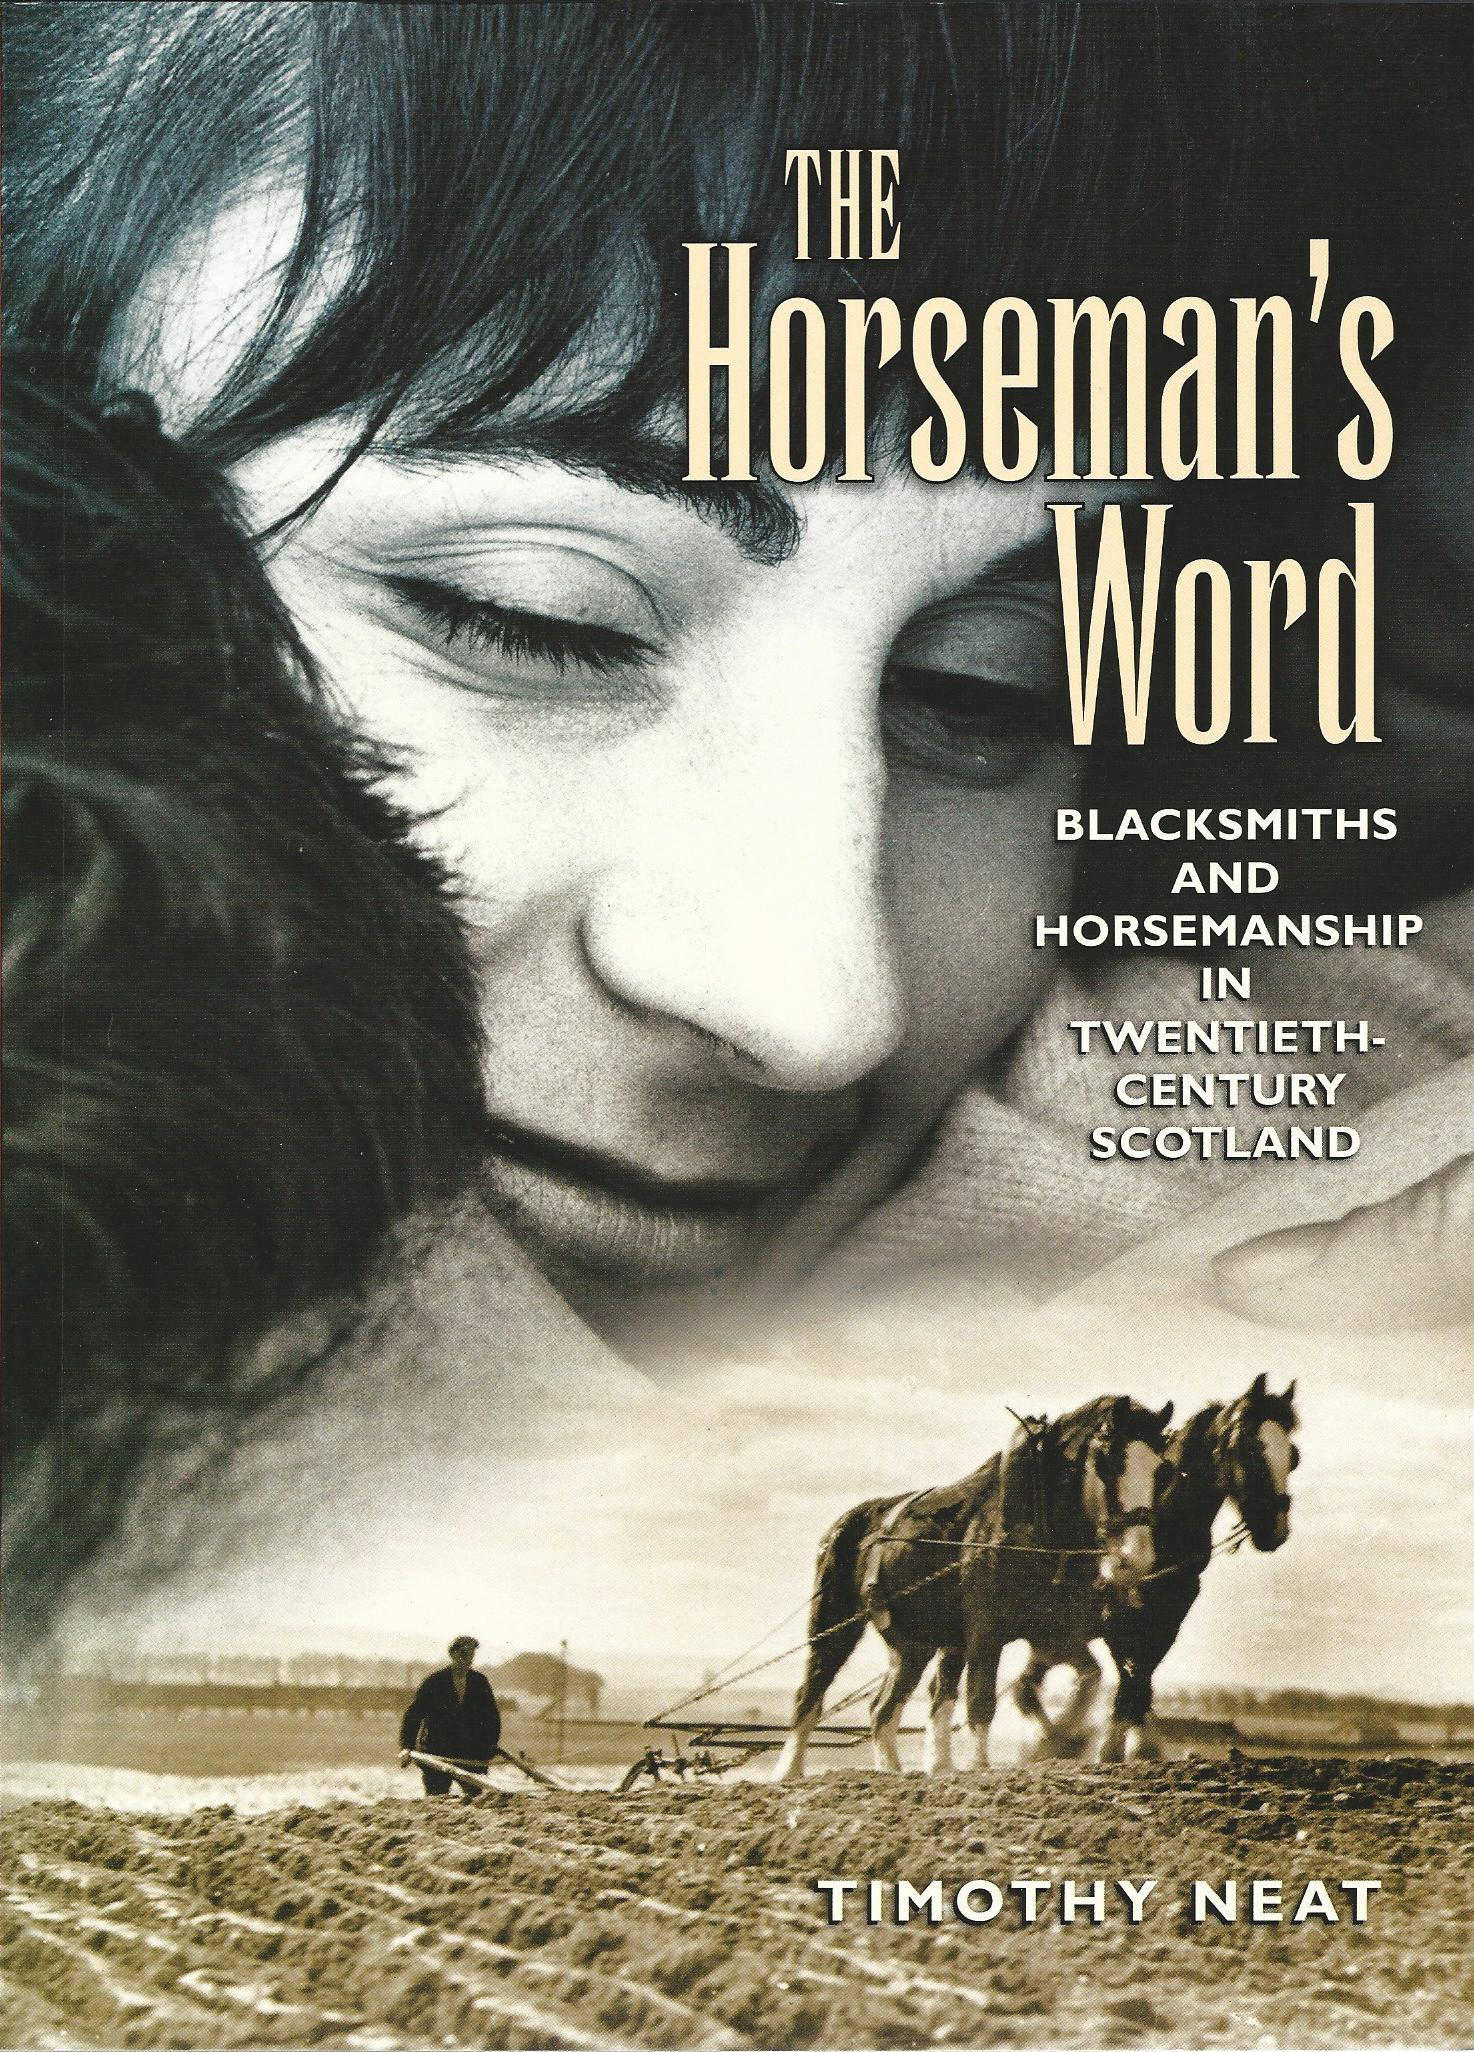 Image for The Horseman's Word: Blacksmiths and Horsemanship in Twentieth Century Scotland.